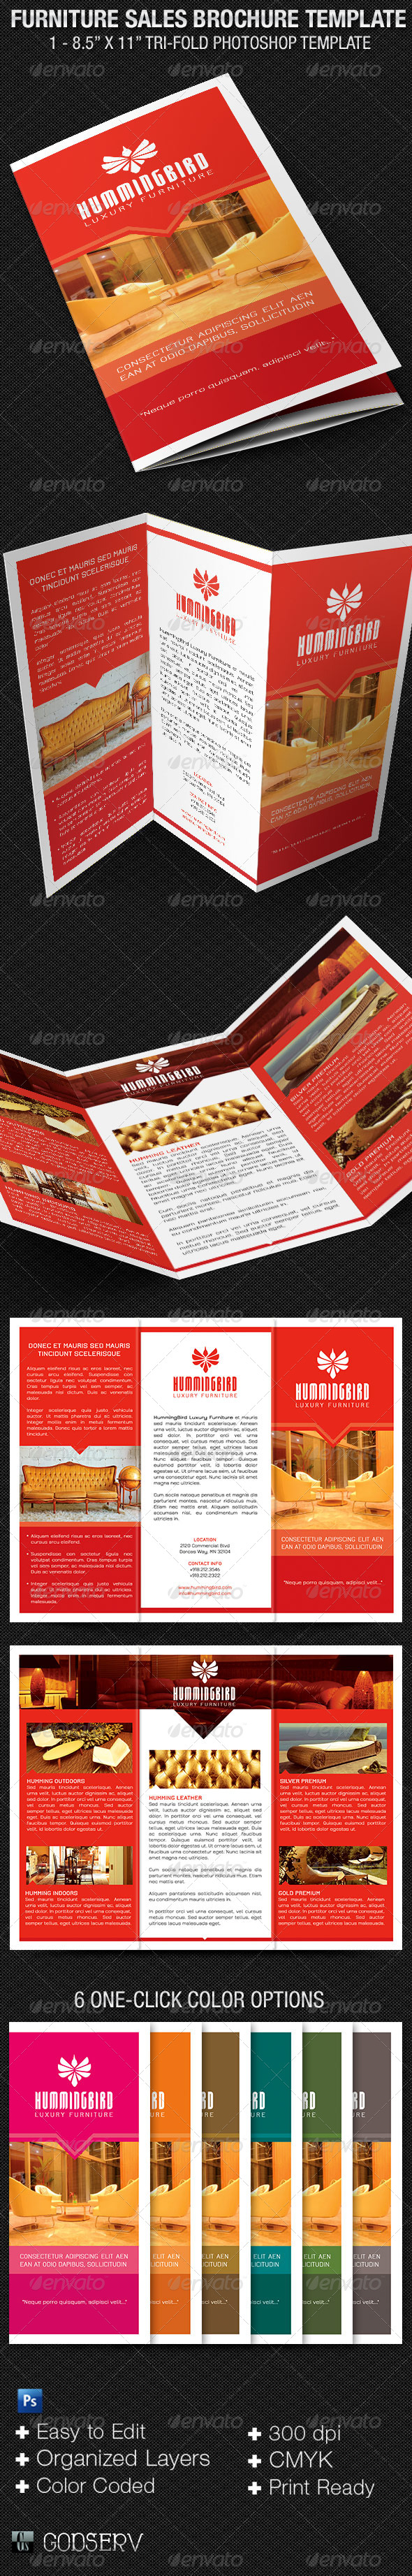 Furniture Sales Brochure Template   Corporate Brochures